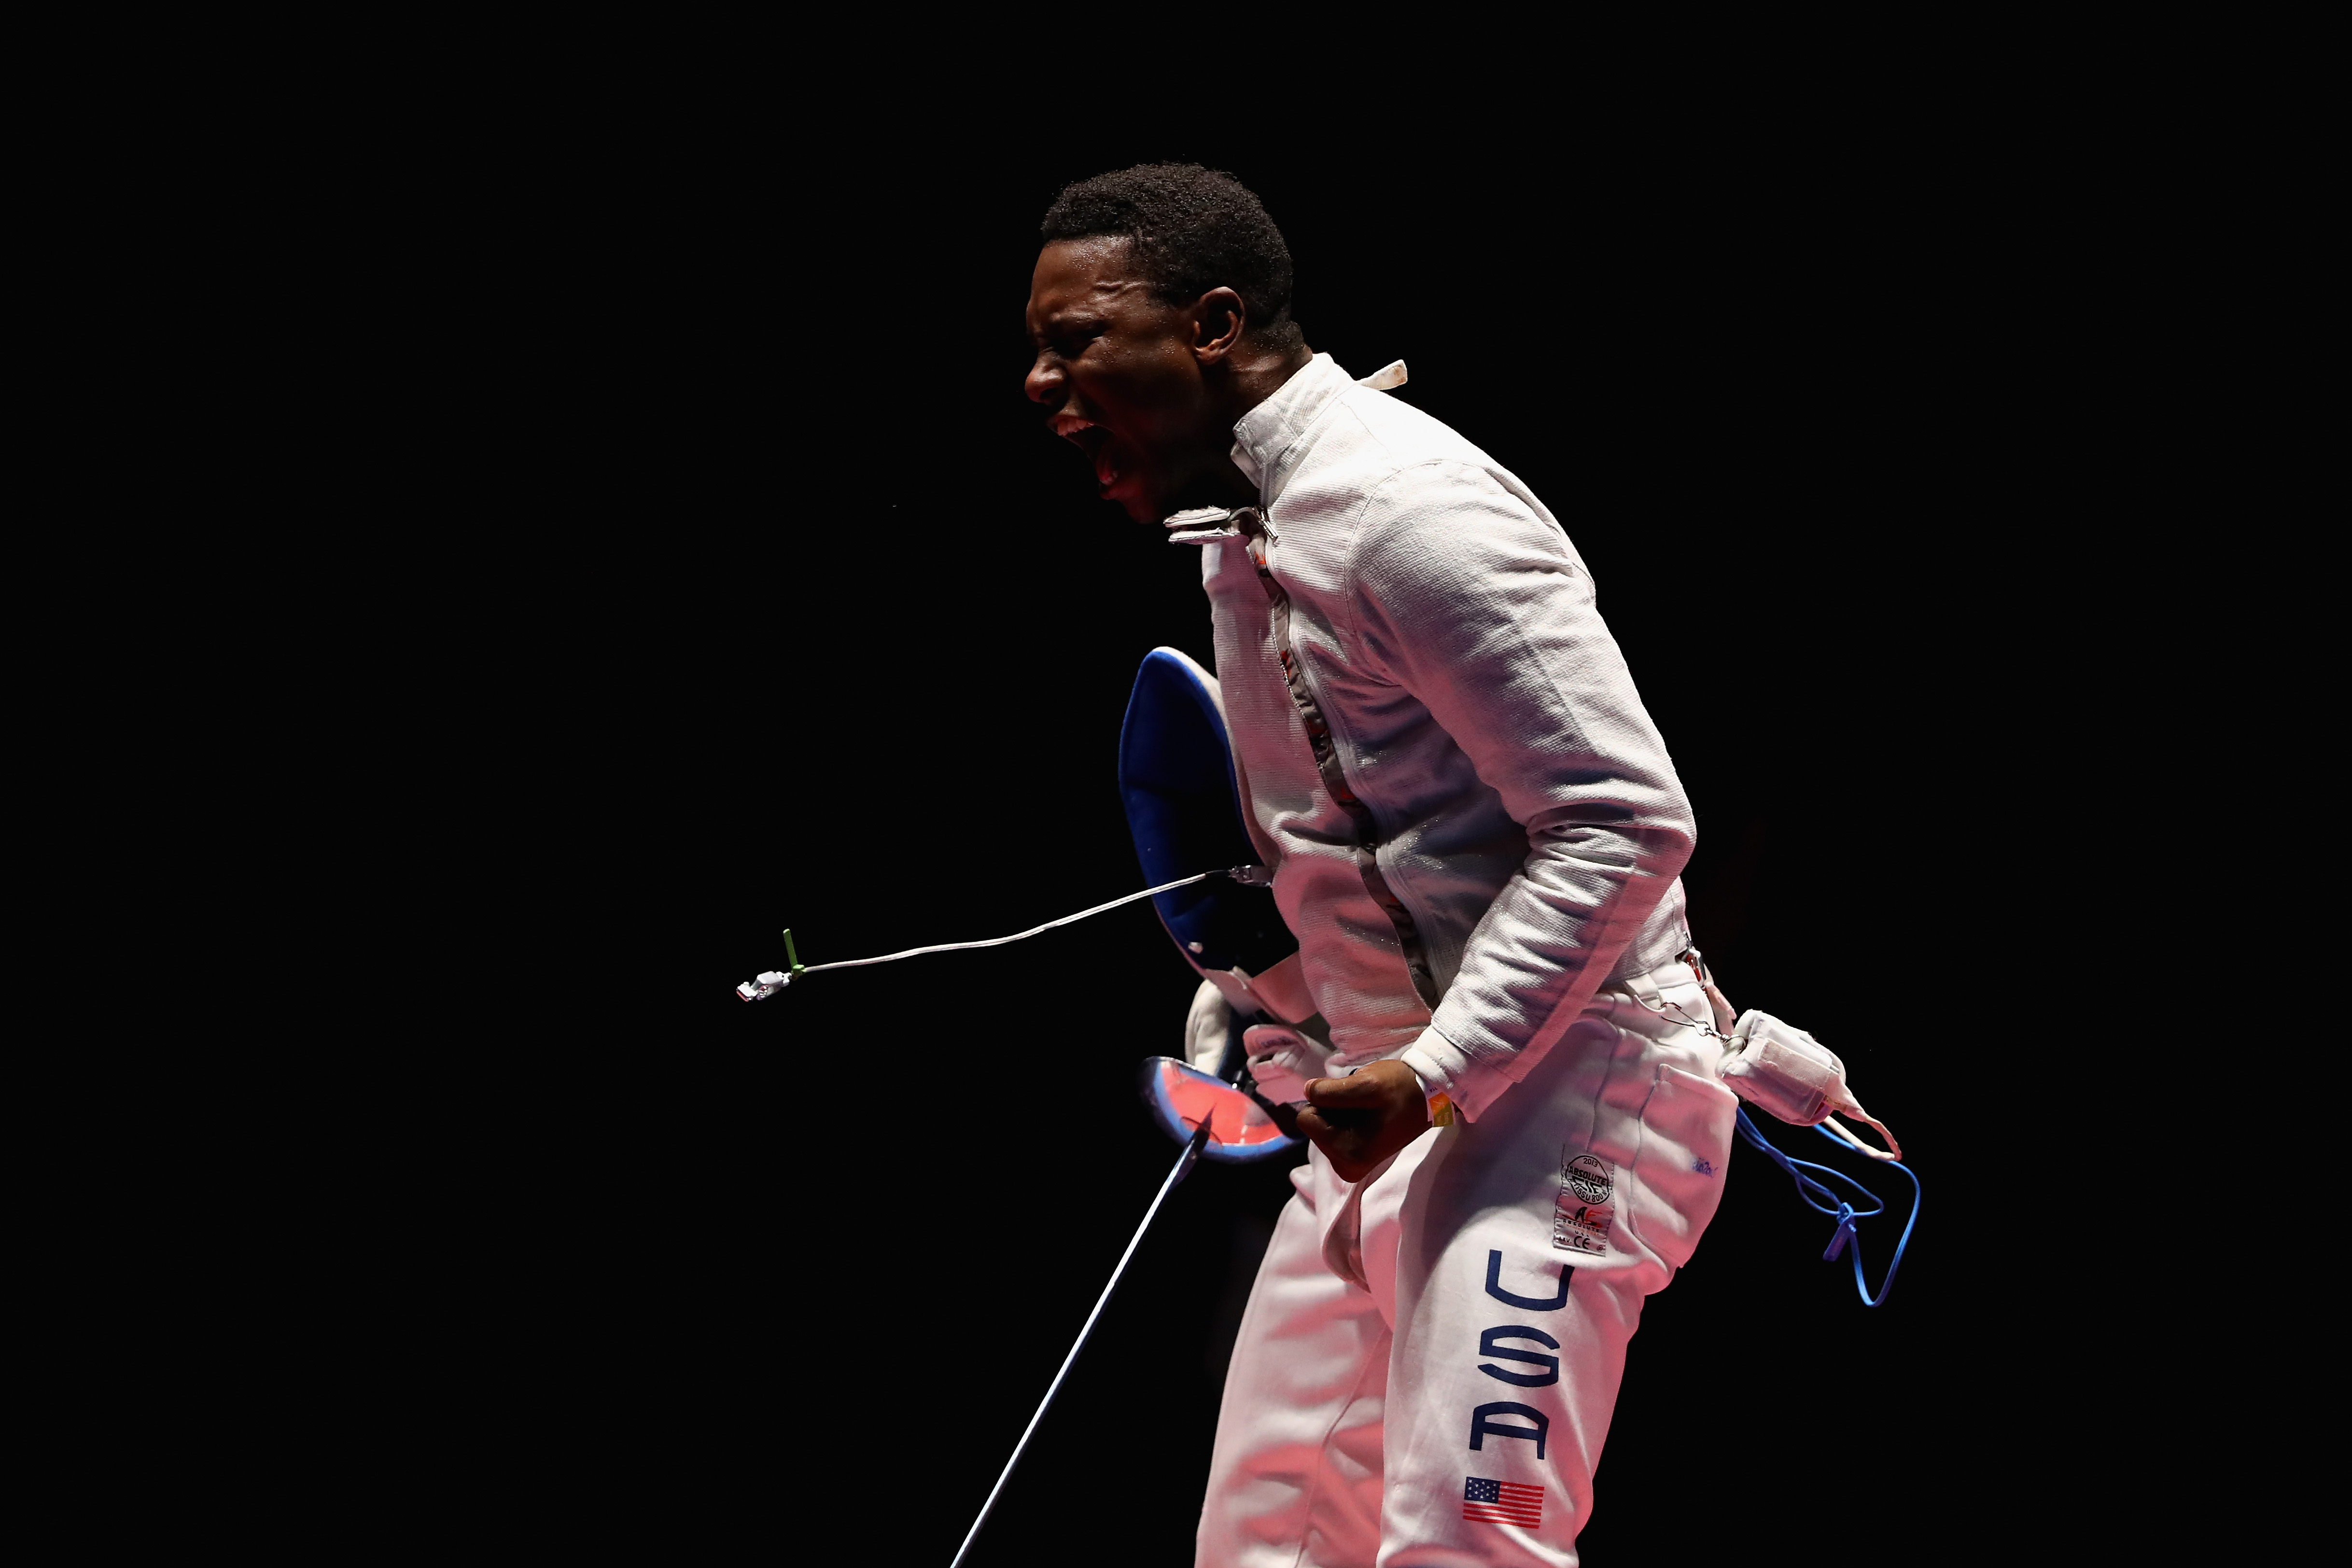 Fencing - Olympics: Day 5